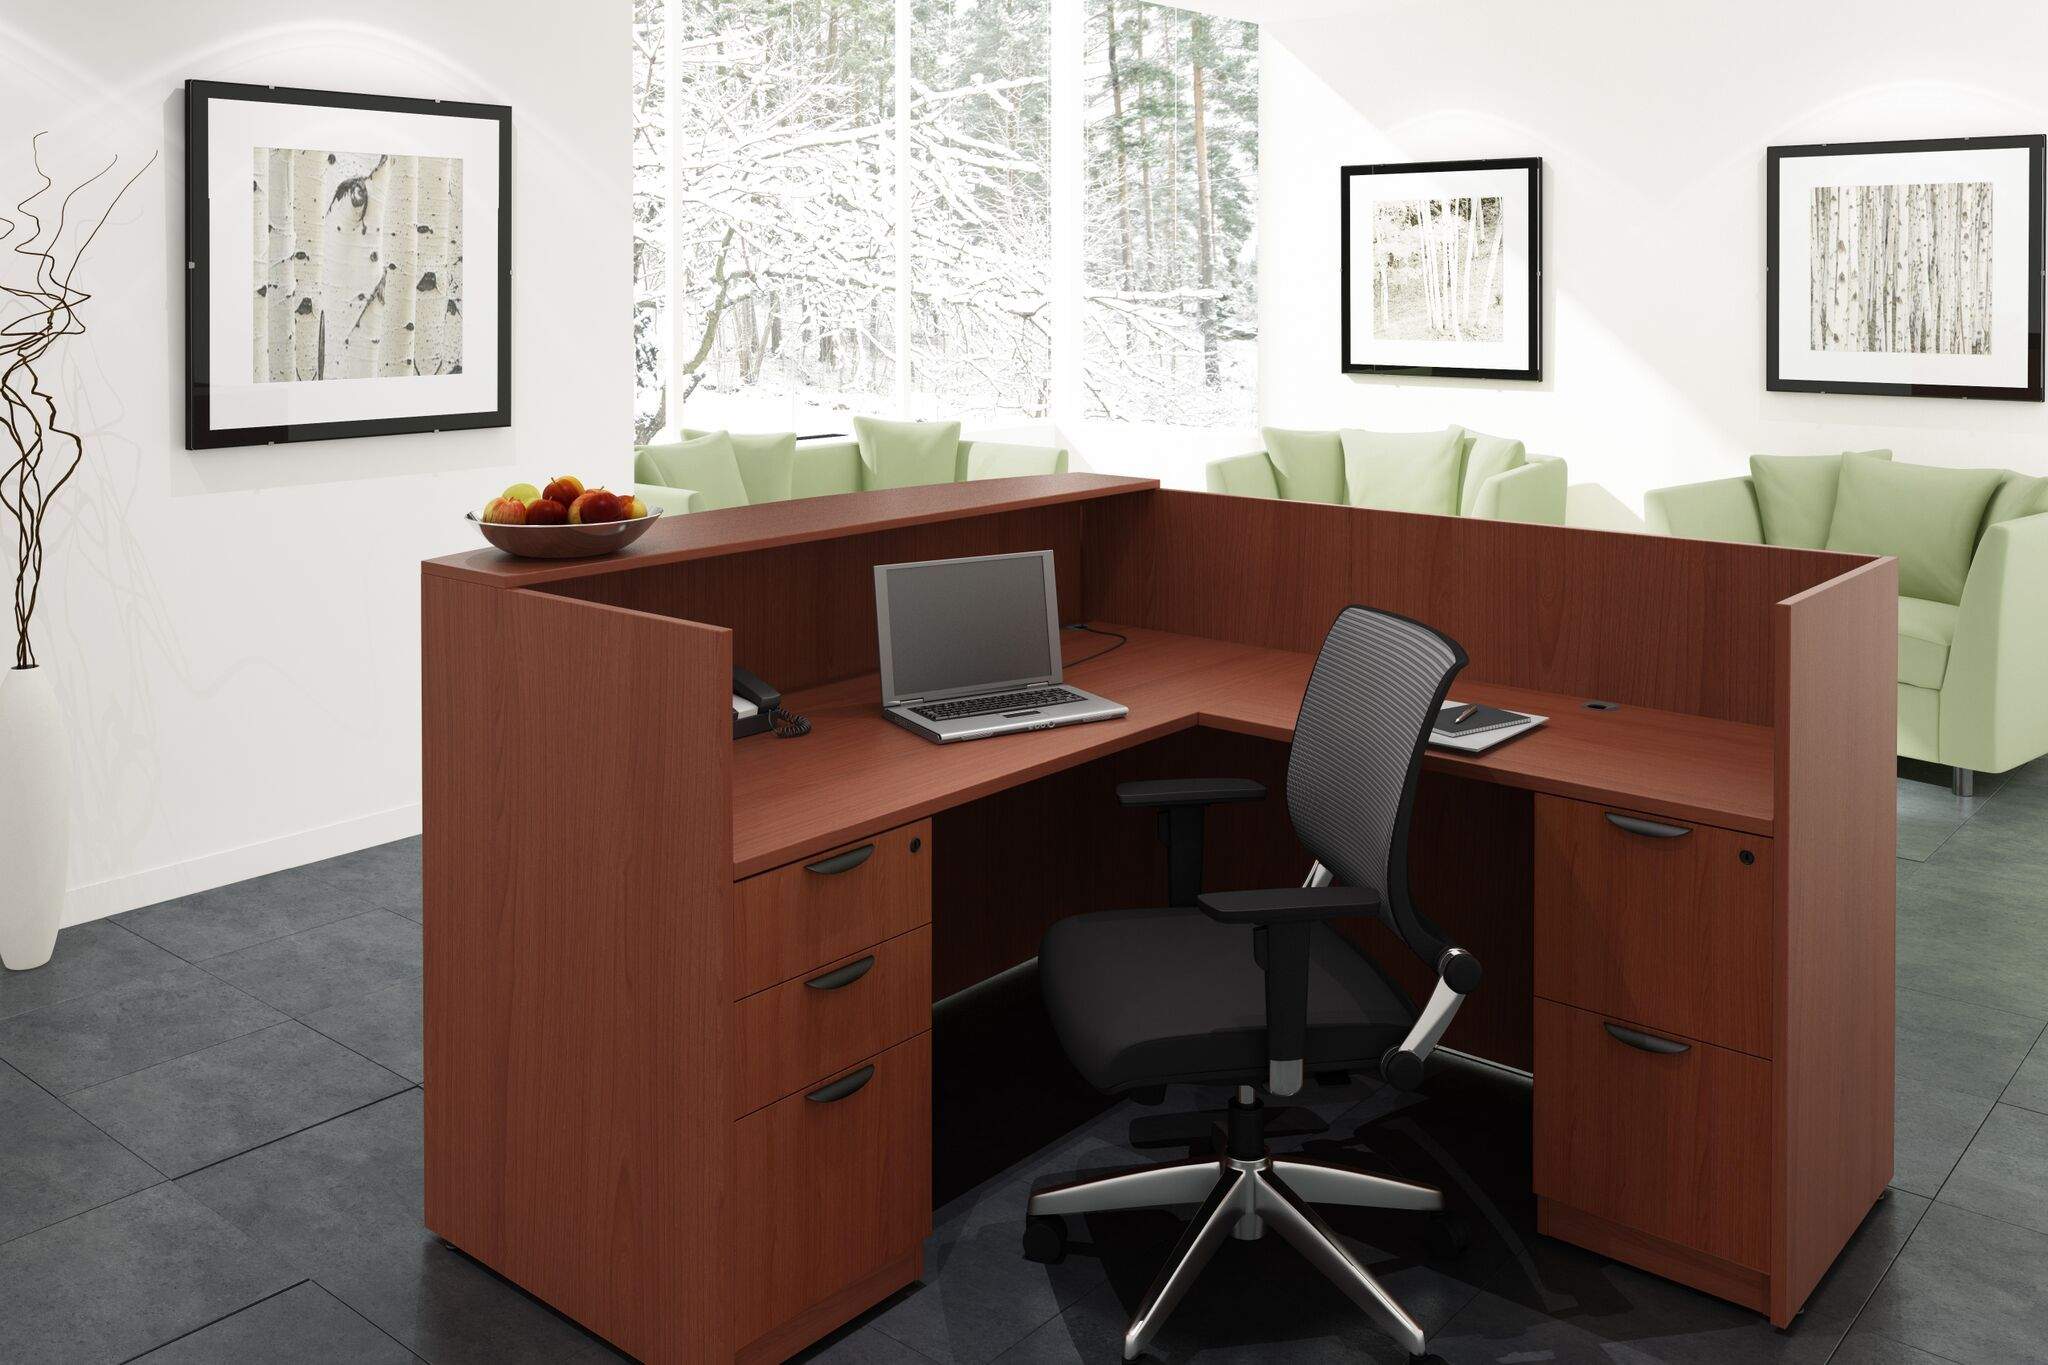 The Receptionarea Is Typically The First Thing You See Upon